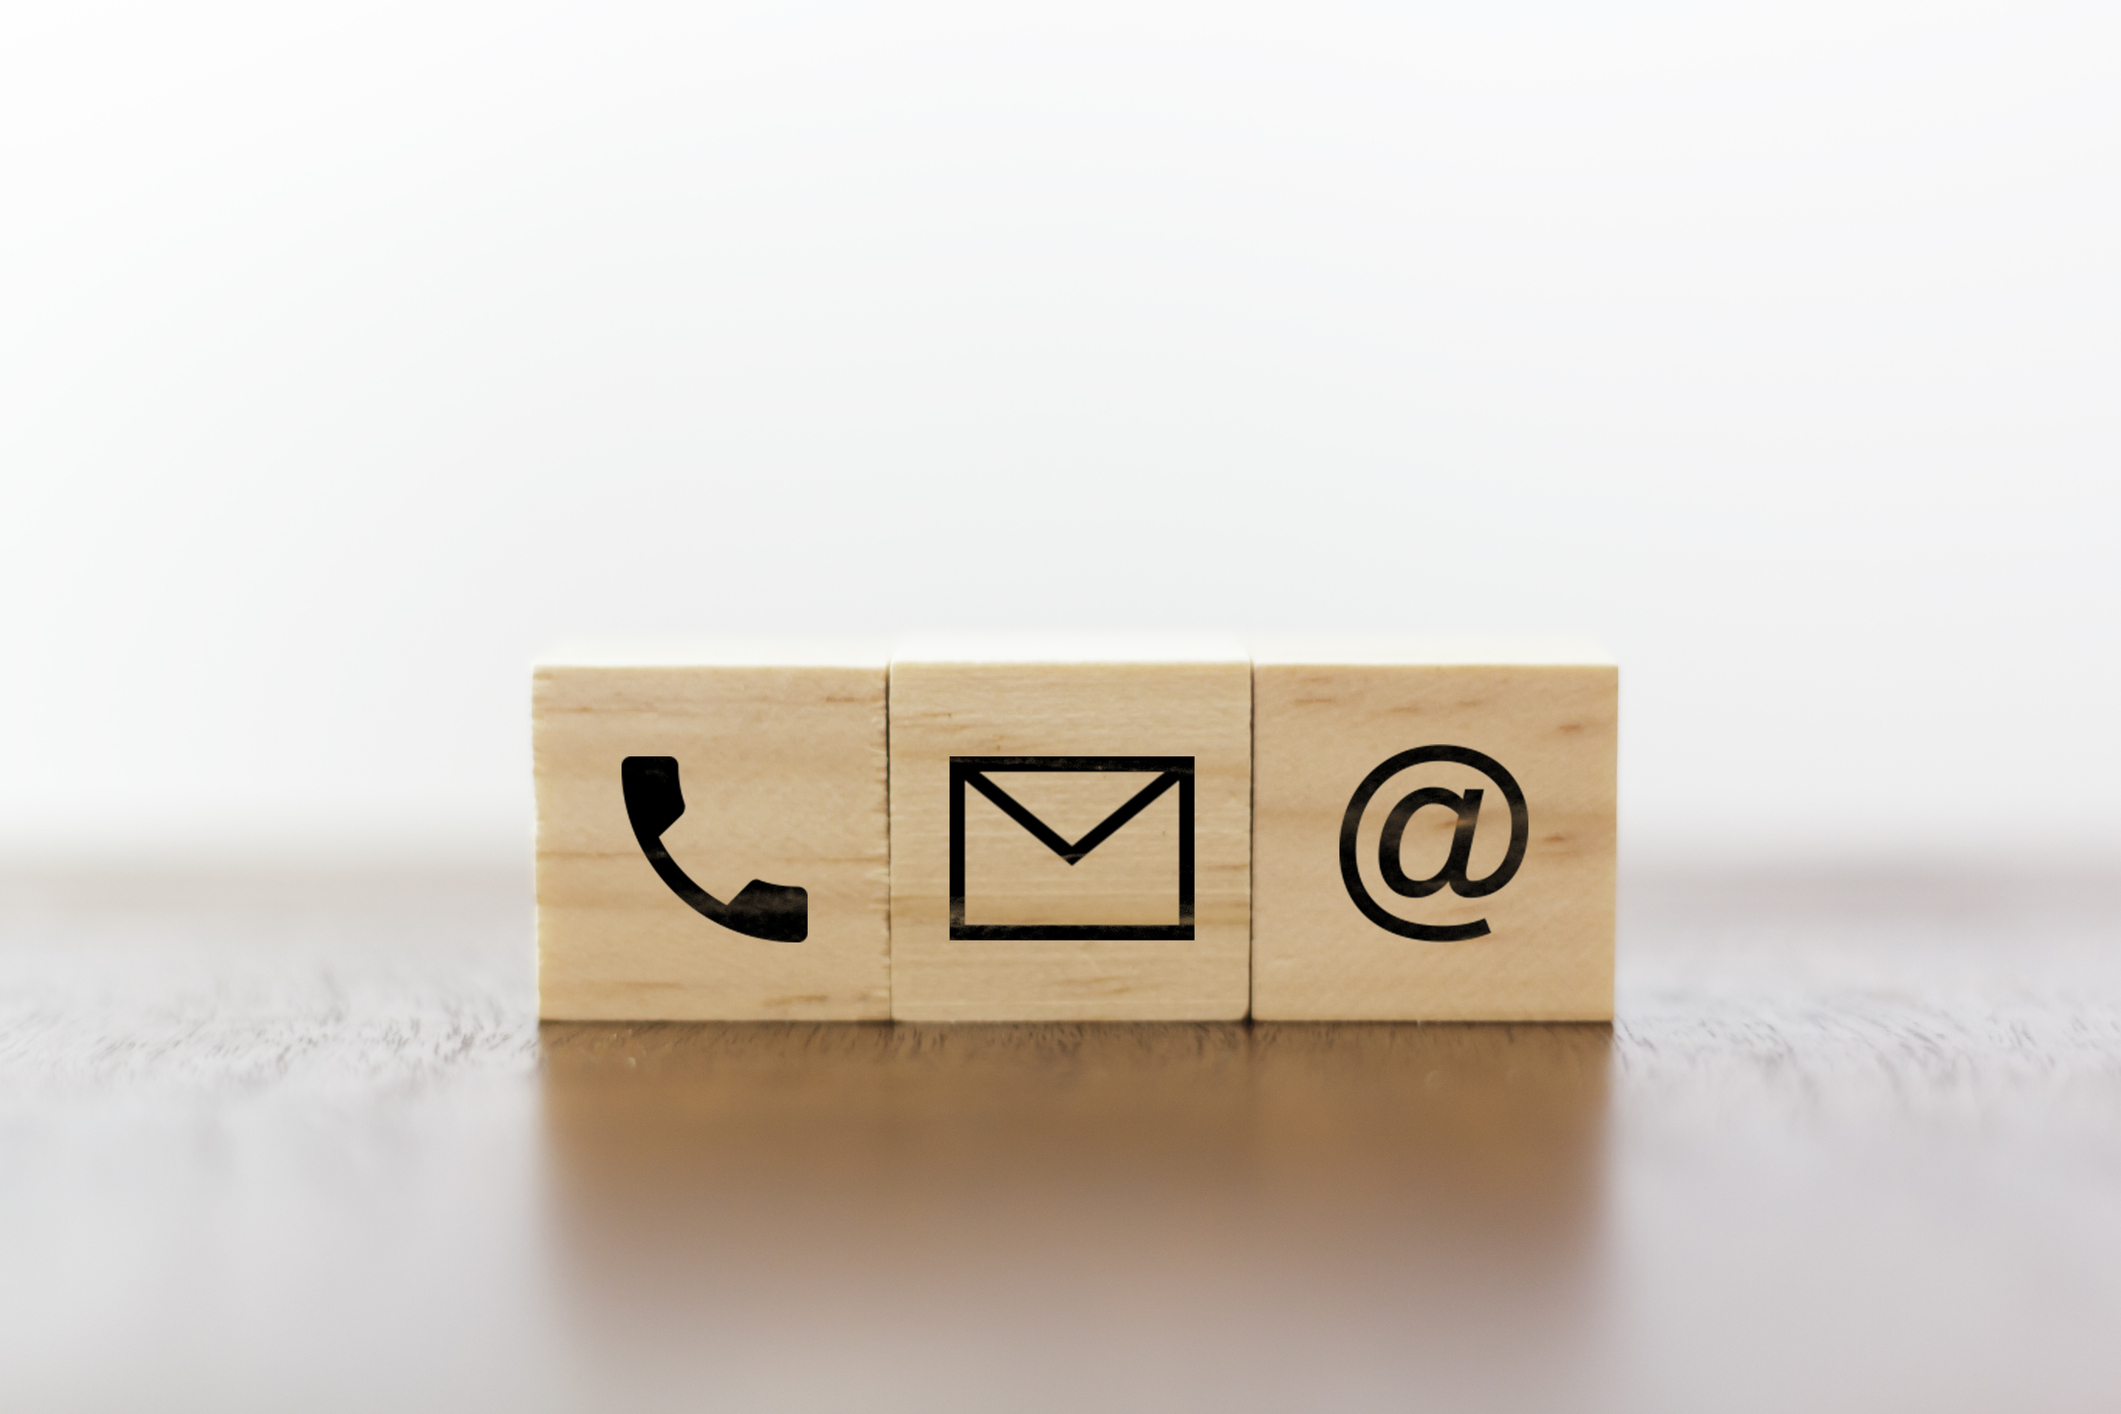 Contact Blocks with phone, mail, and @